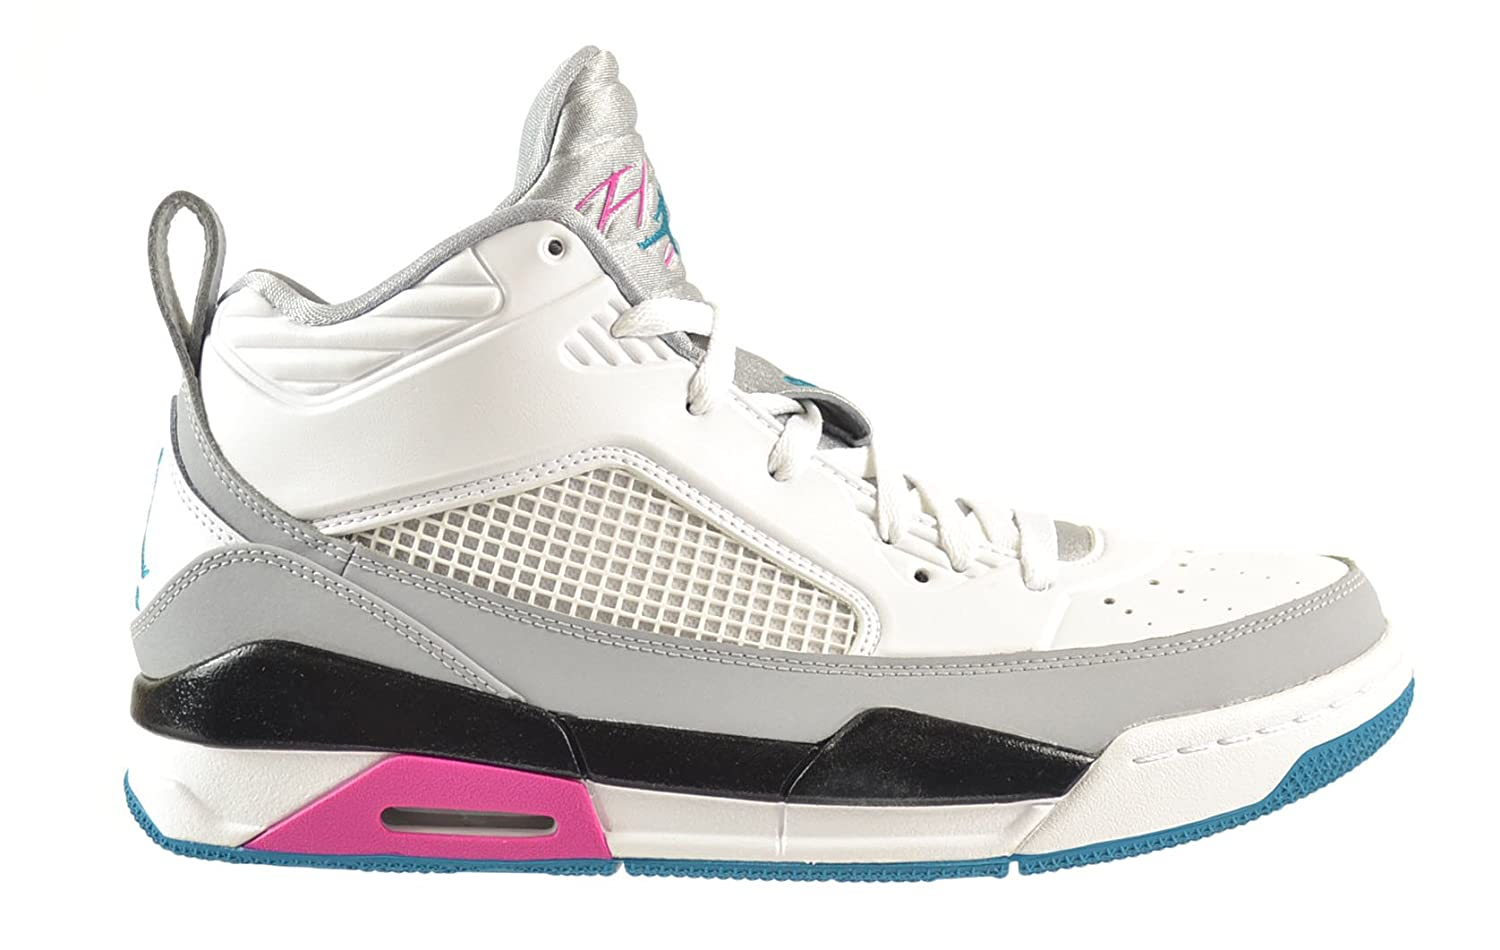 new product 94a21 5f139 Jordan Flight 9.5 Men's Shoes White/Tropical Teal-Wolf Grey-Black 654262-115